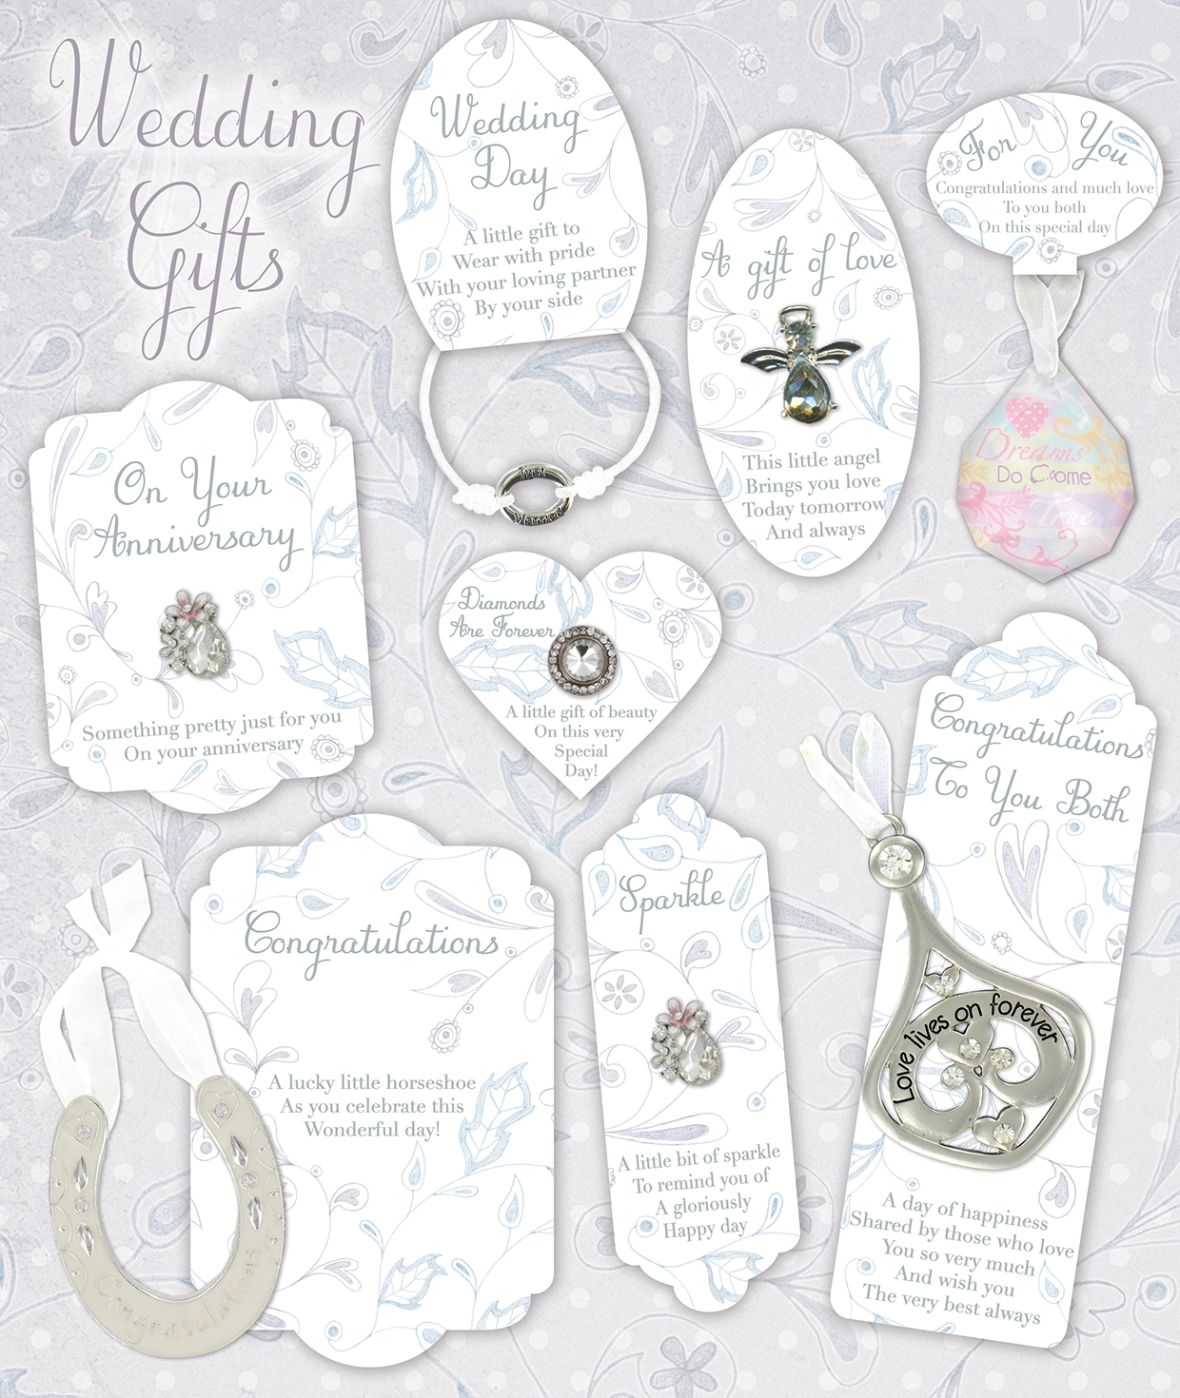 wedding gifts selection